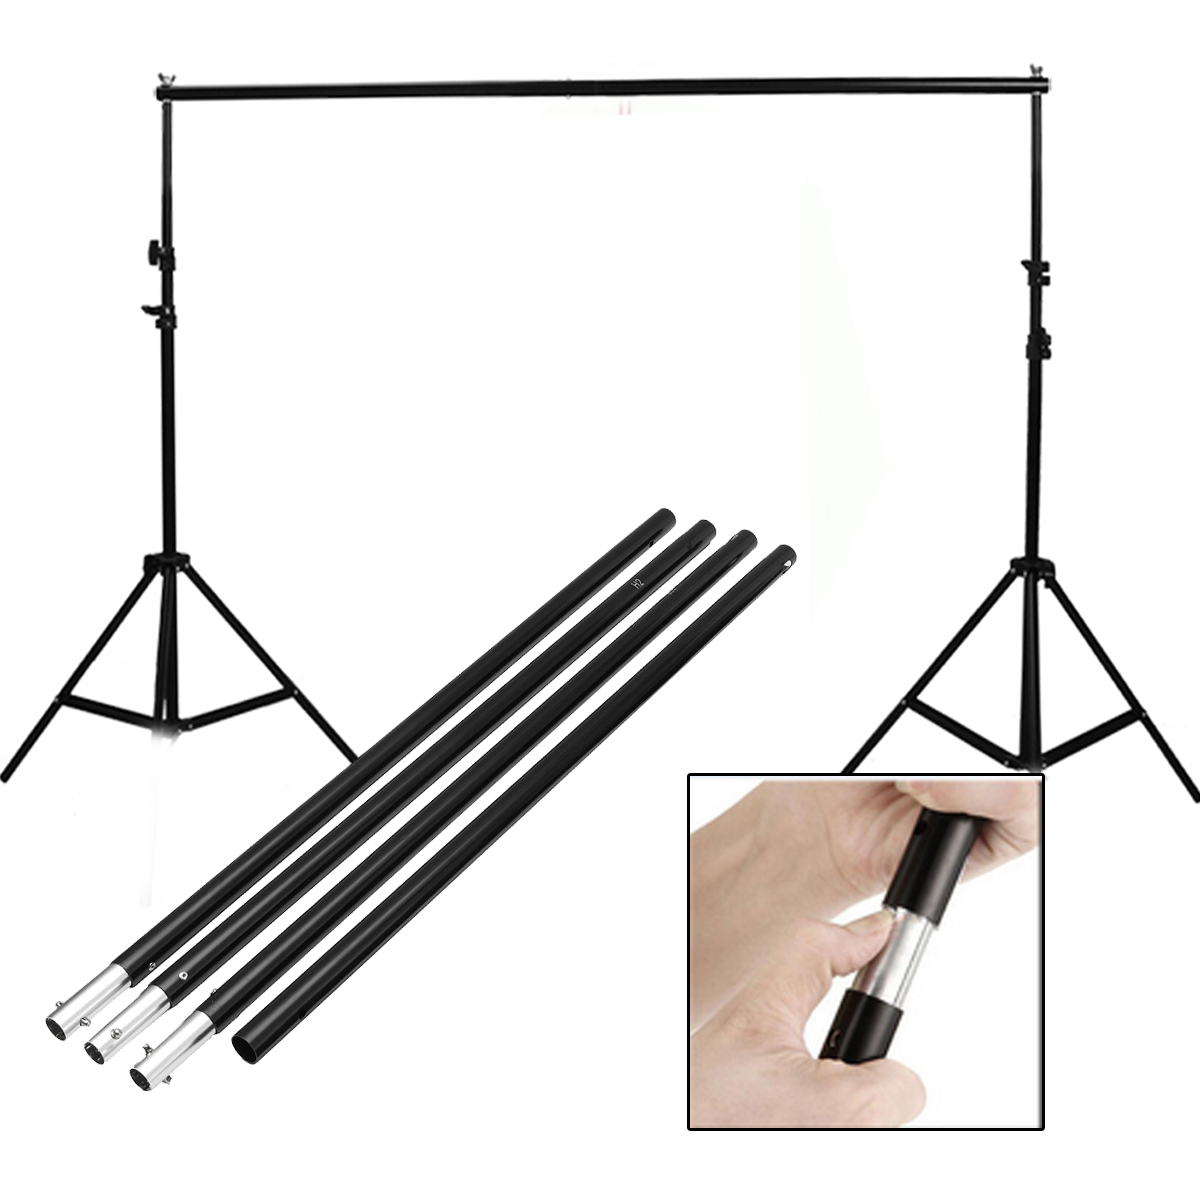 2.8m/9.2ft Adjustable Crossbar for Photography Background Support Photo Backdrop Stand System for Photo Studio 10ft adjustable background support stand photo backdrop crossbar kit photography